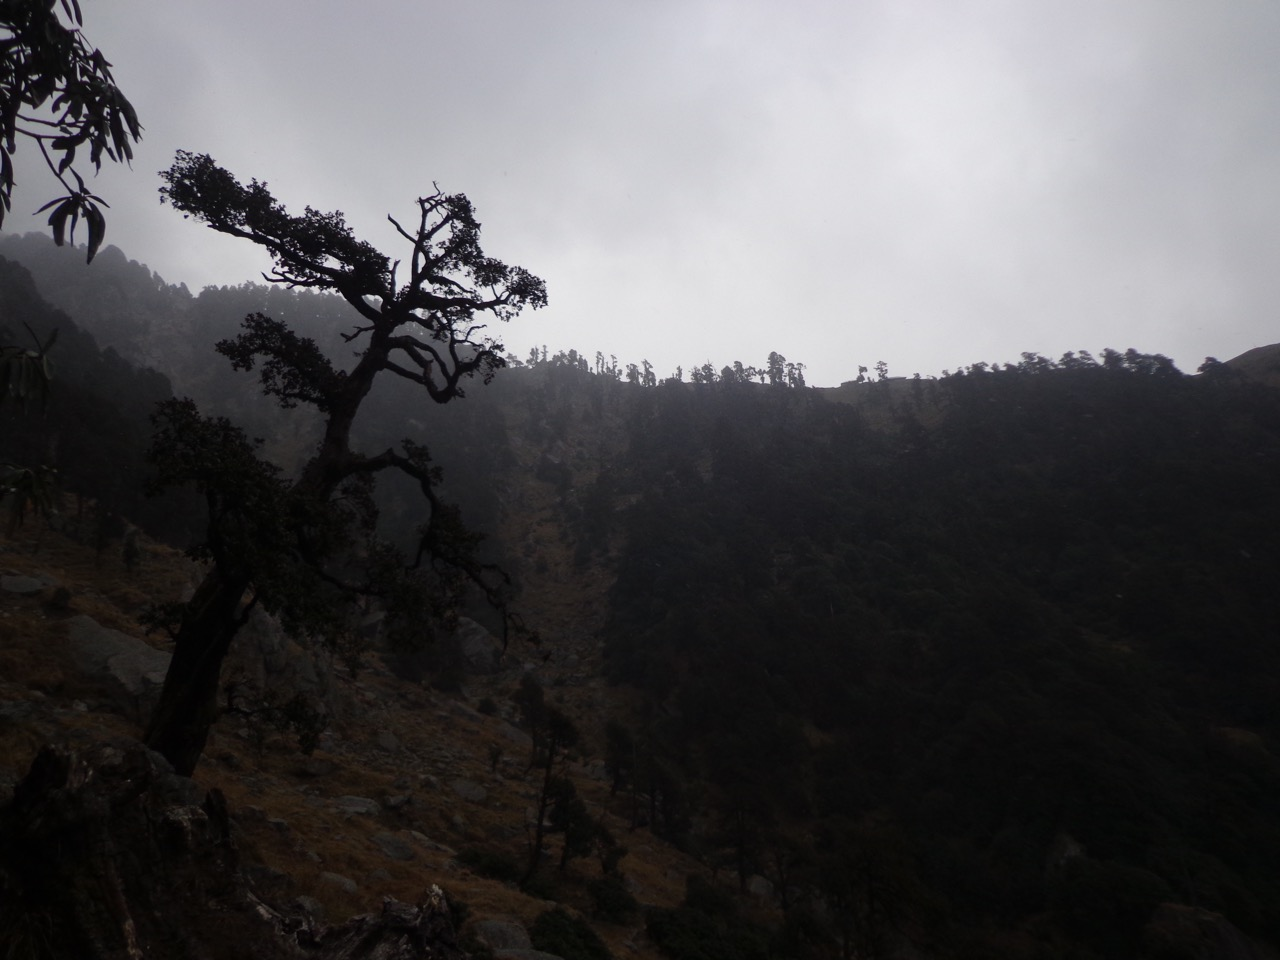 Triund was covered in clouds. It was drizzling but I was happy that I had escaped the snowstorm.